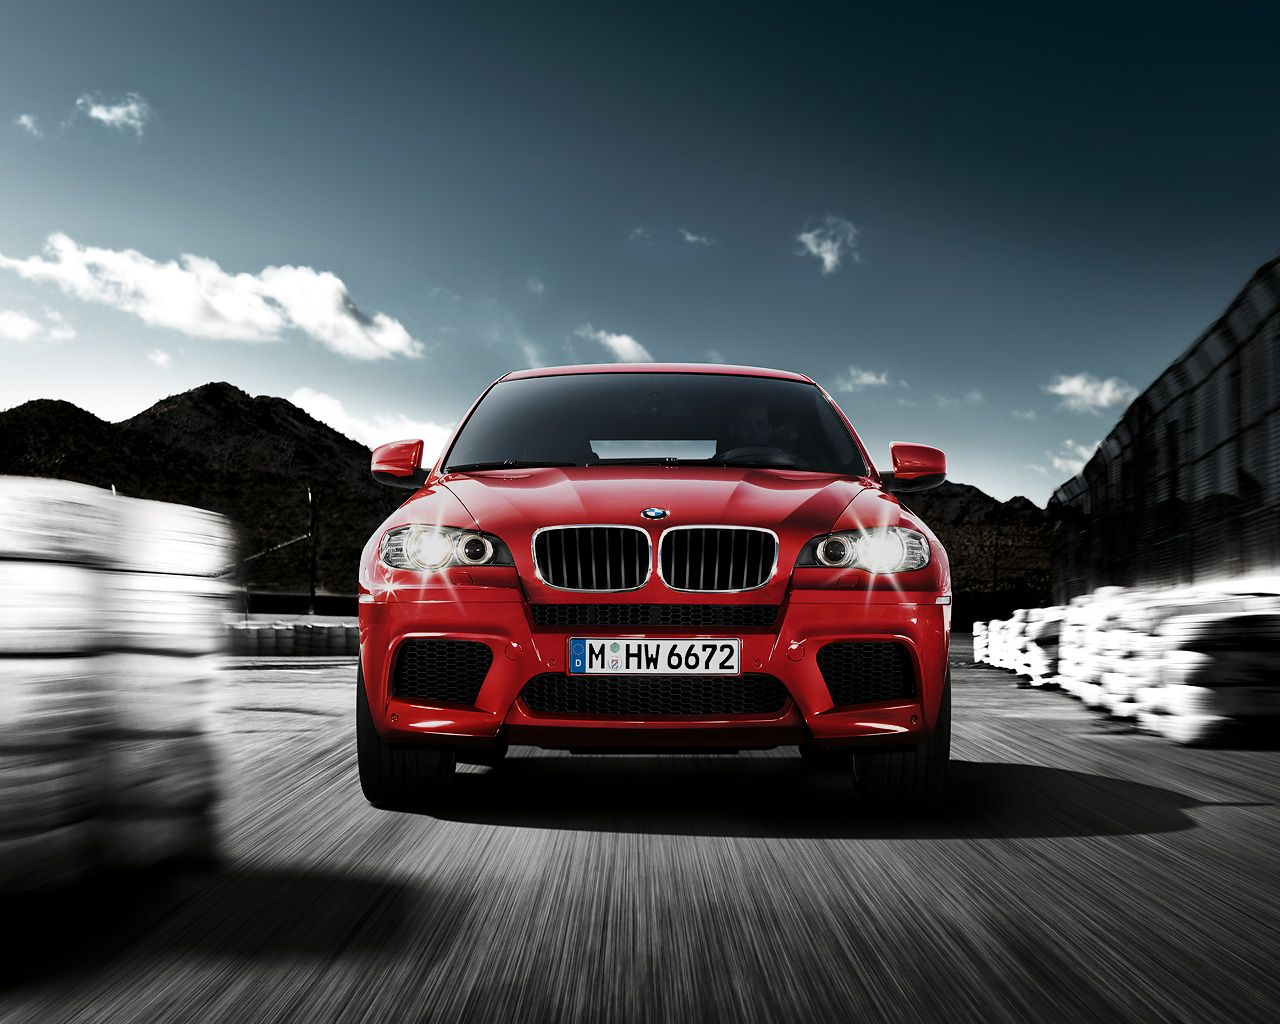 Cool bmw cars check out these bimmers http